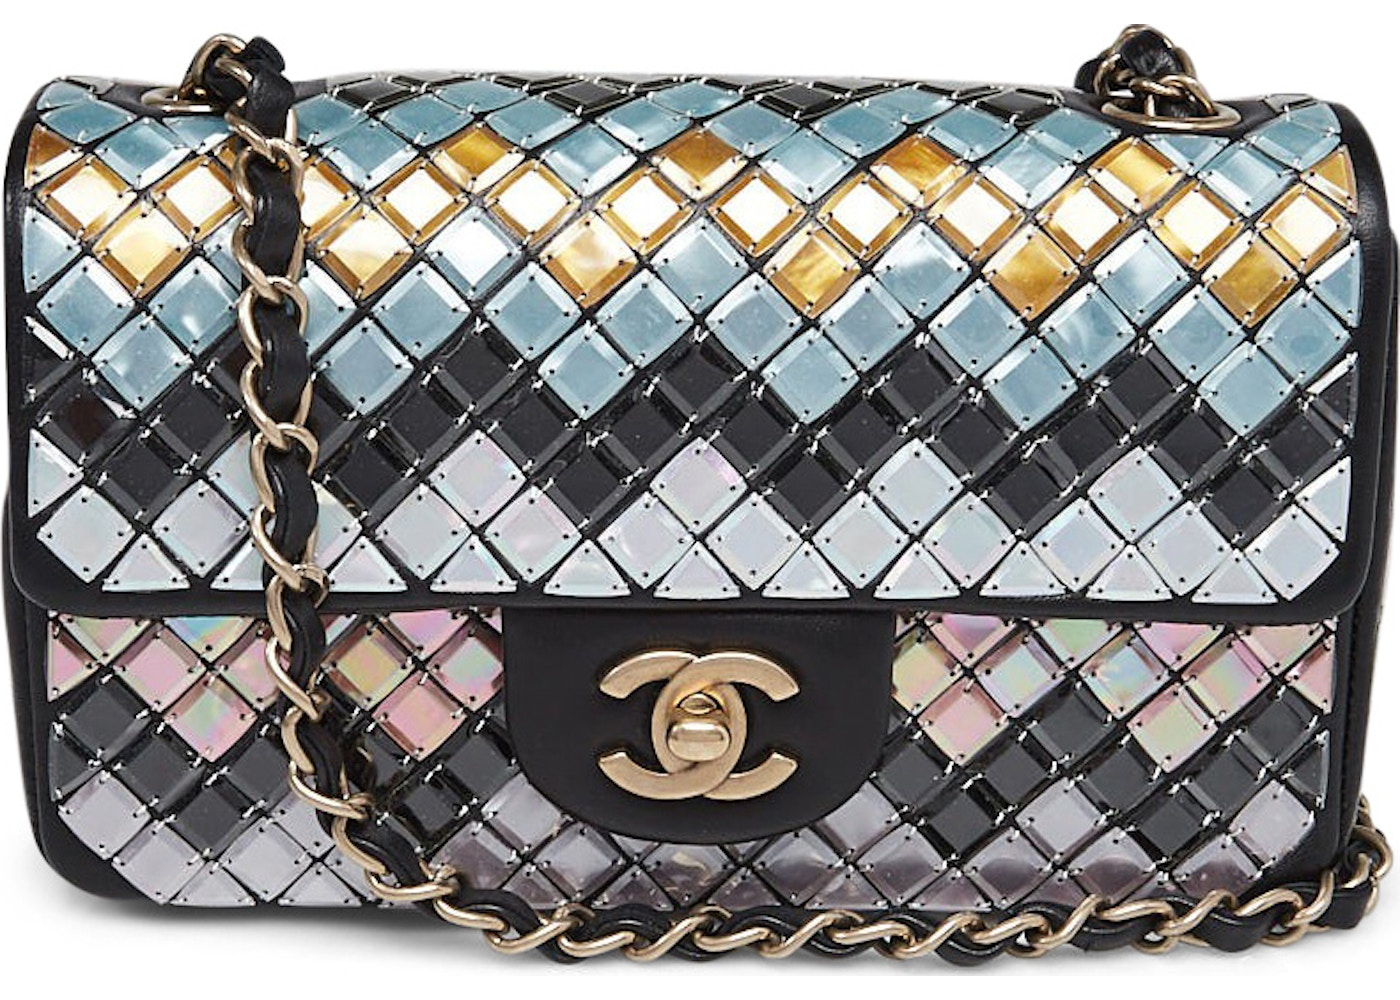 8548879fa9d3 Chanel Timeless Classic Flap Mosaic Embroidered New Mini Black ...